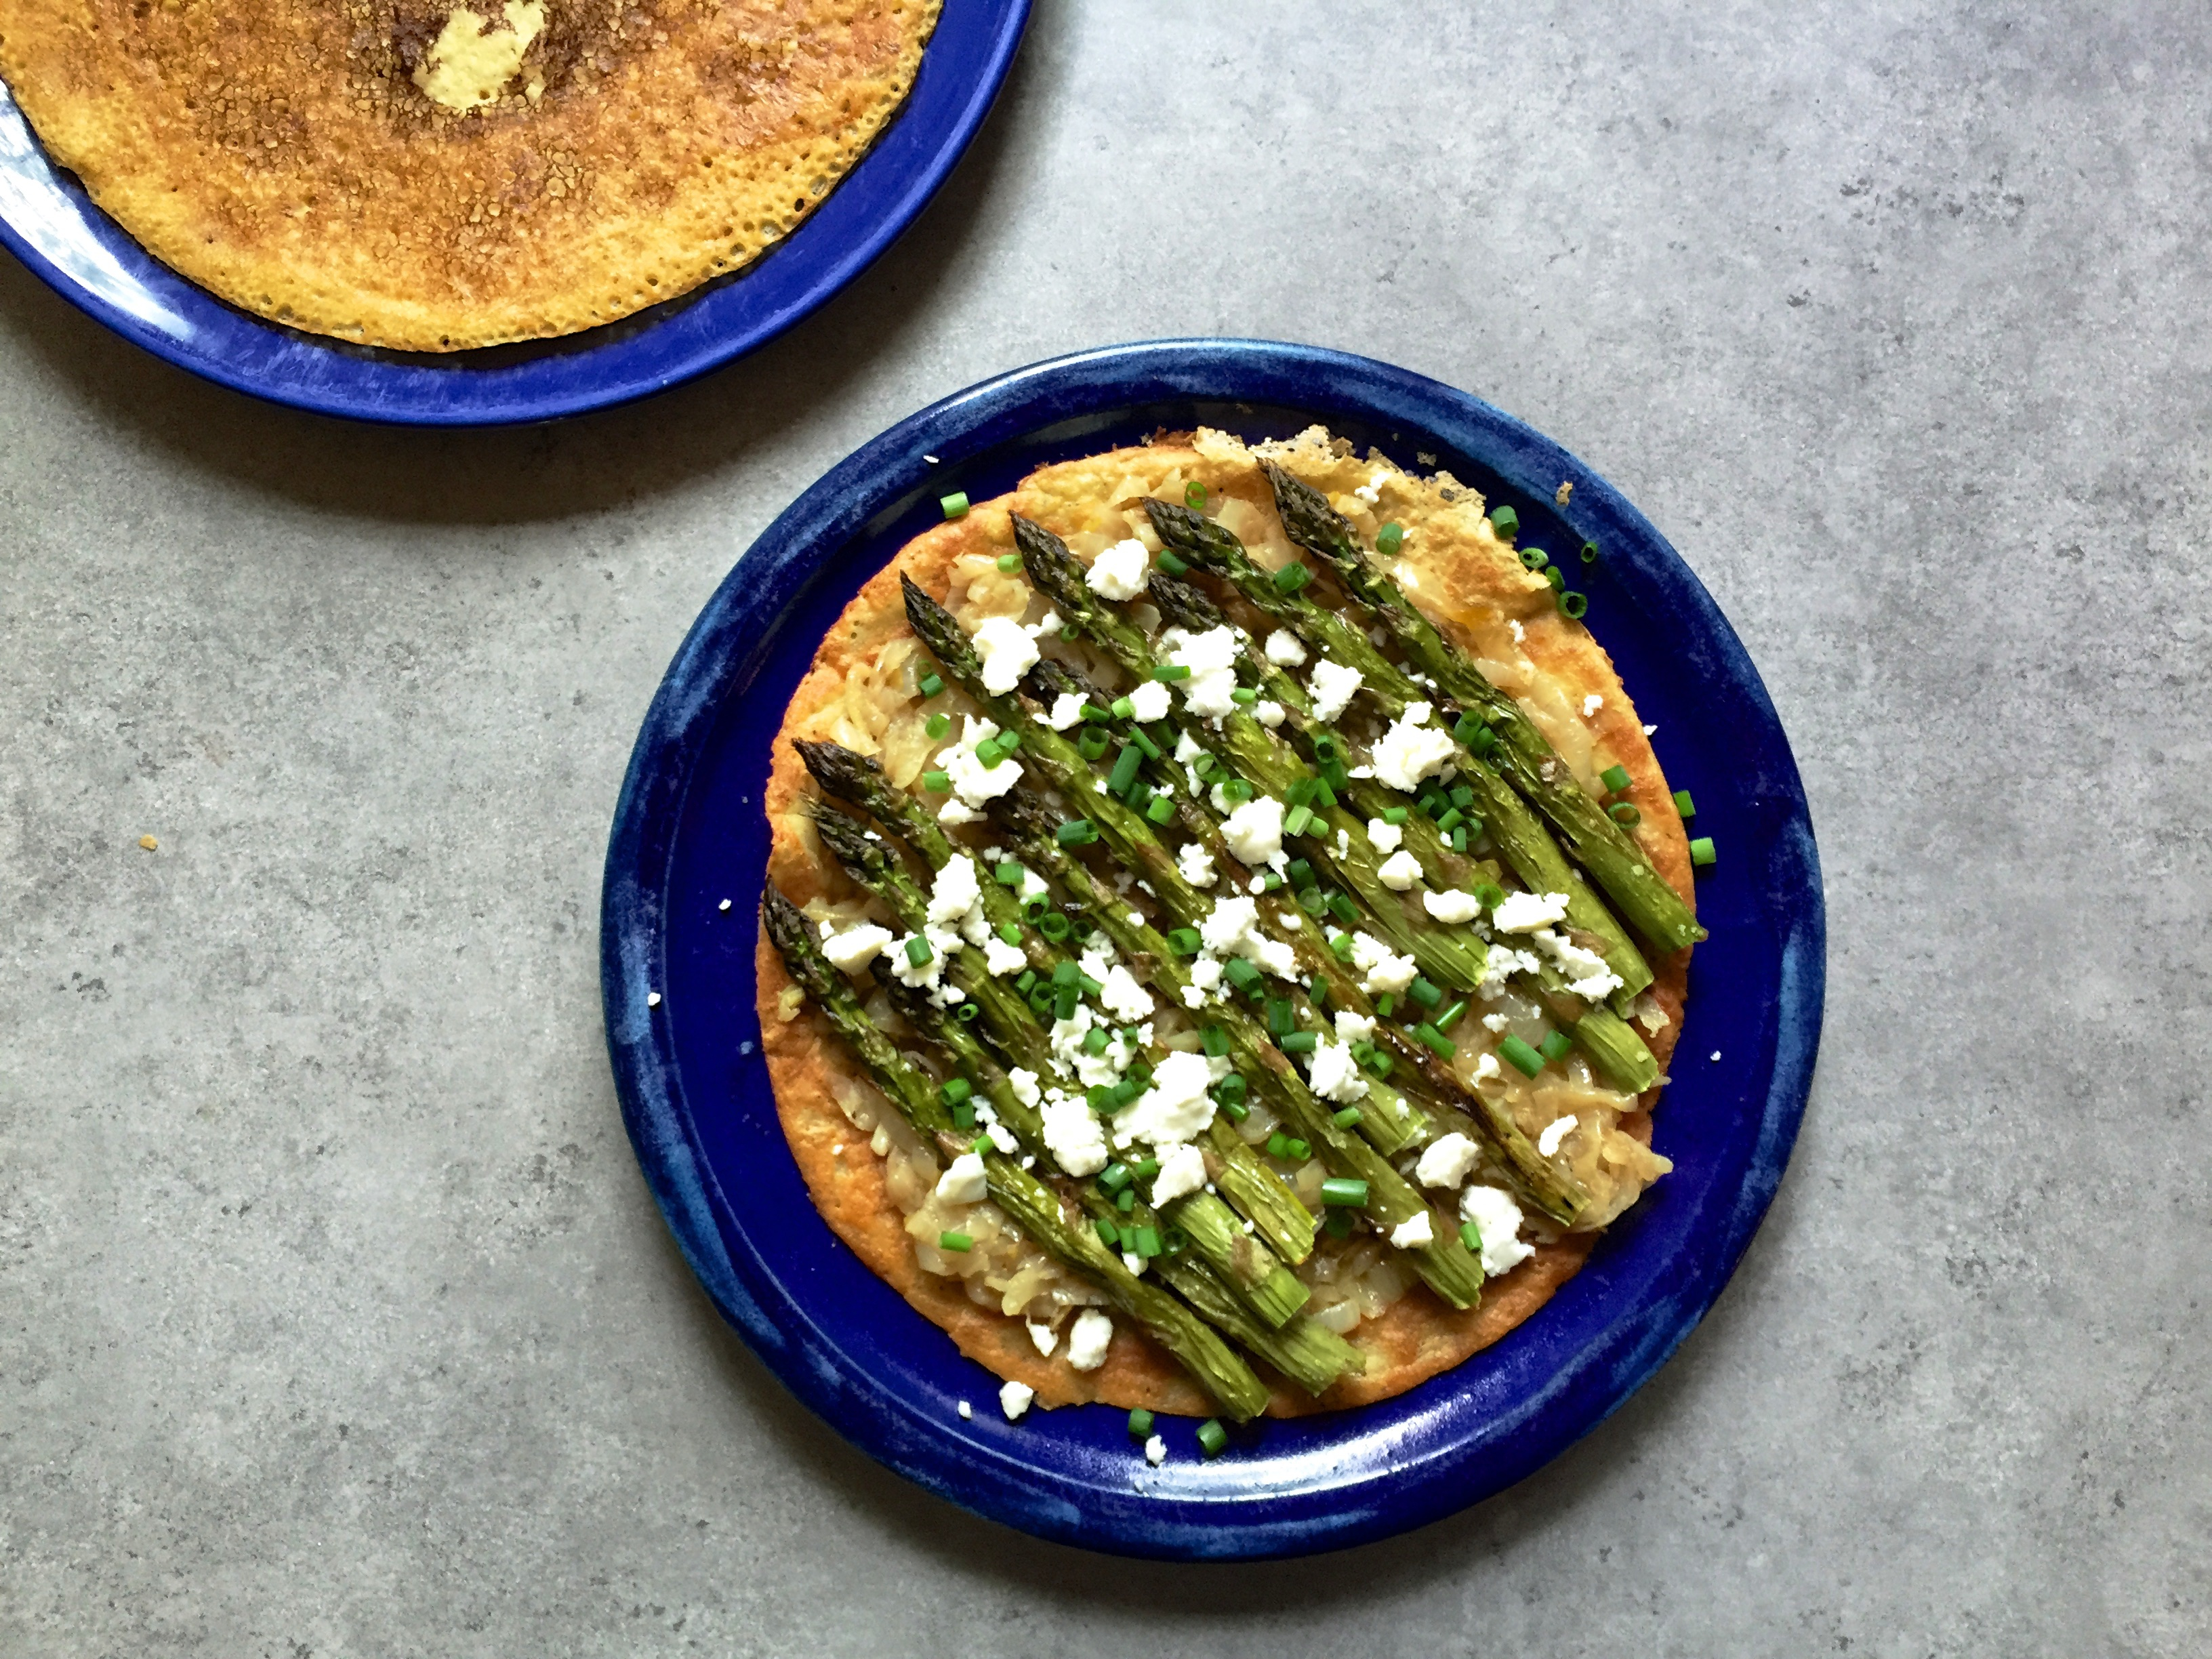 Socca (chickpea flour crepe) with asparagus, caramelized onion and feta